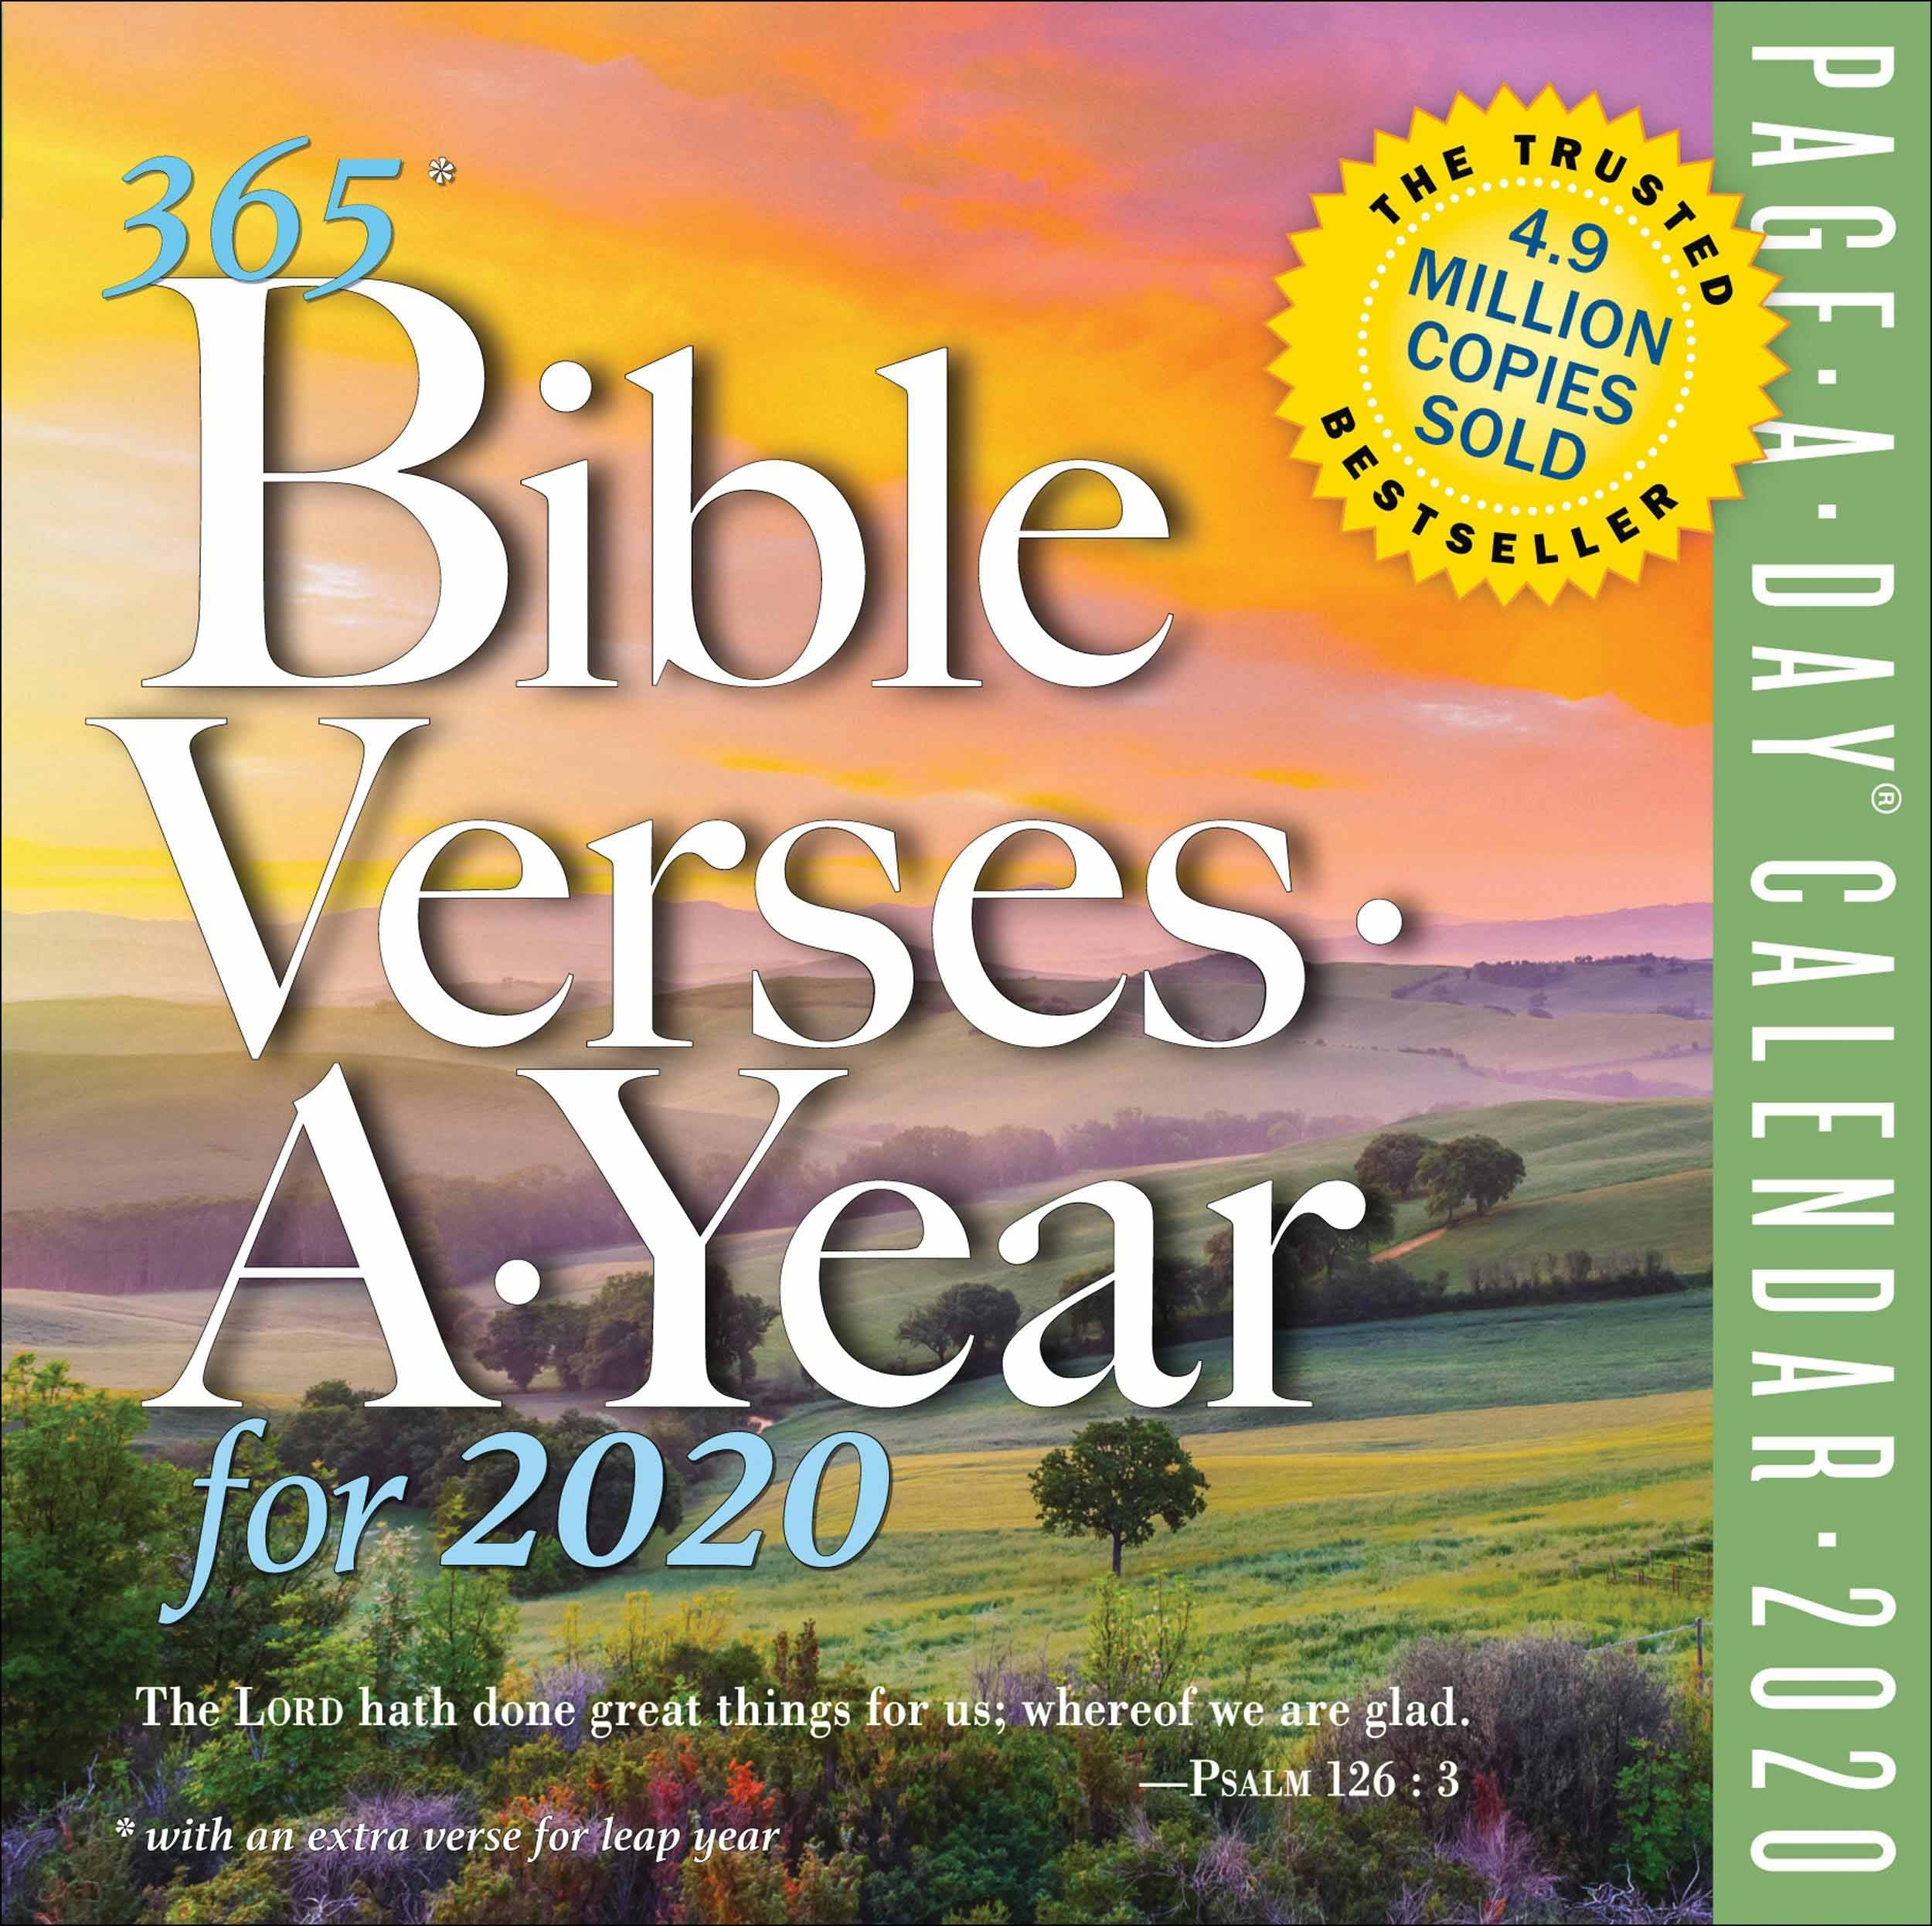 365 Bible Verses A Year Desk Calendar 2020  Advent Scriptures 2020